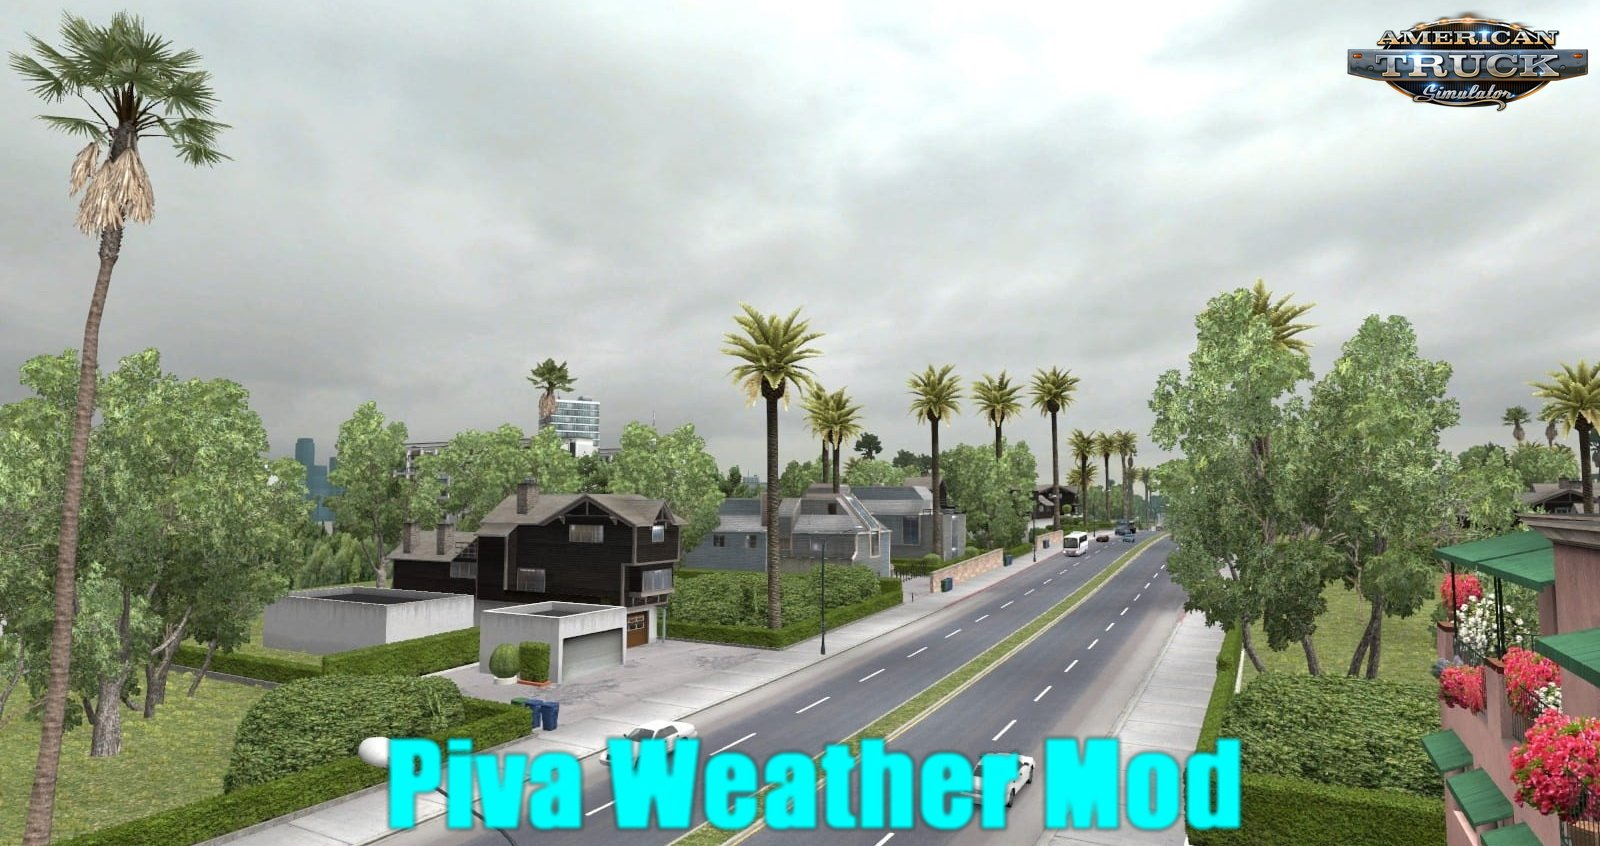 Piva Weather Mod v3.3.1 (1.29.x)